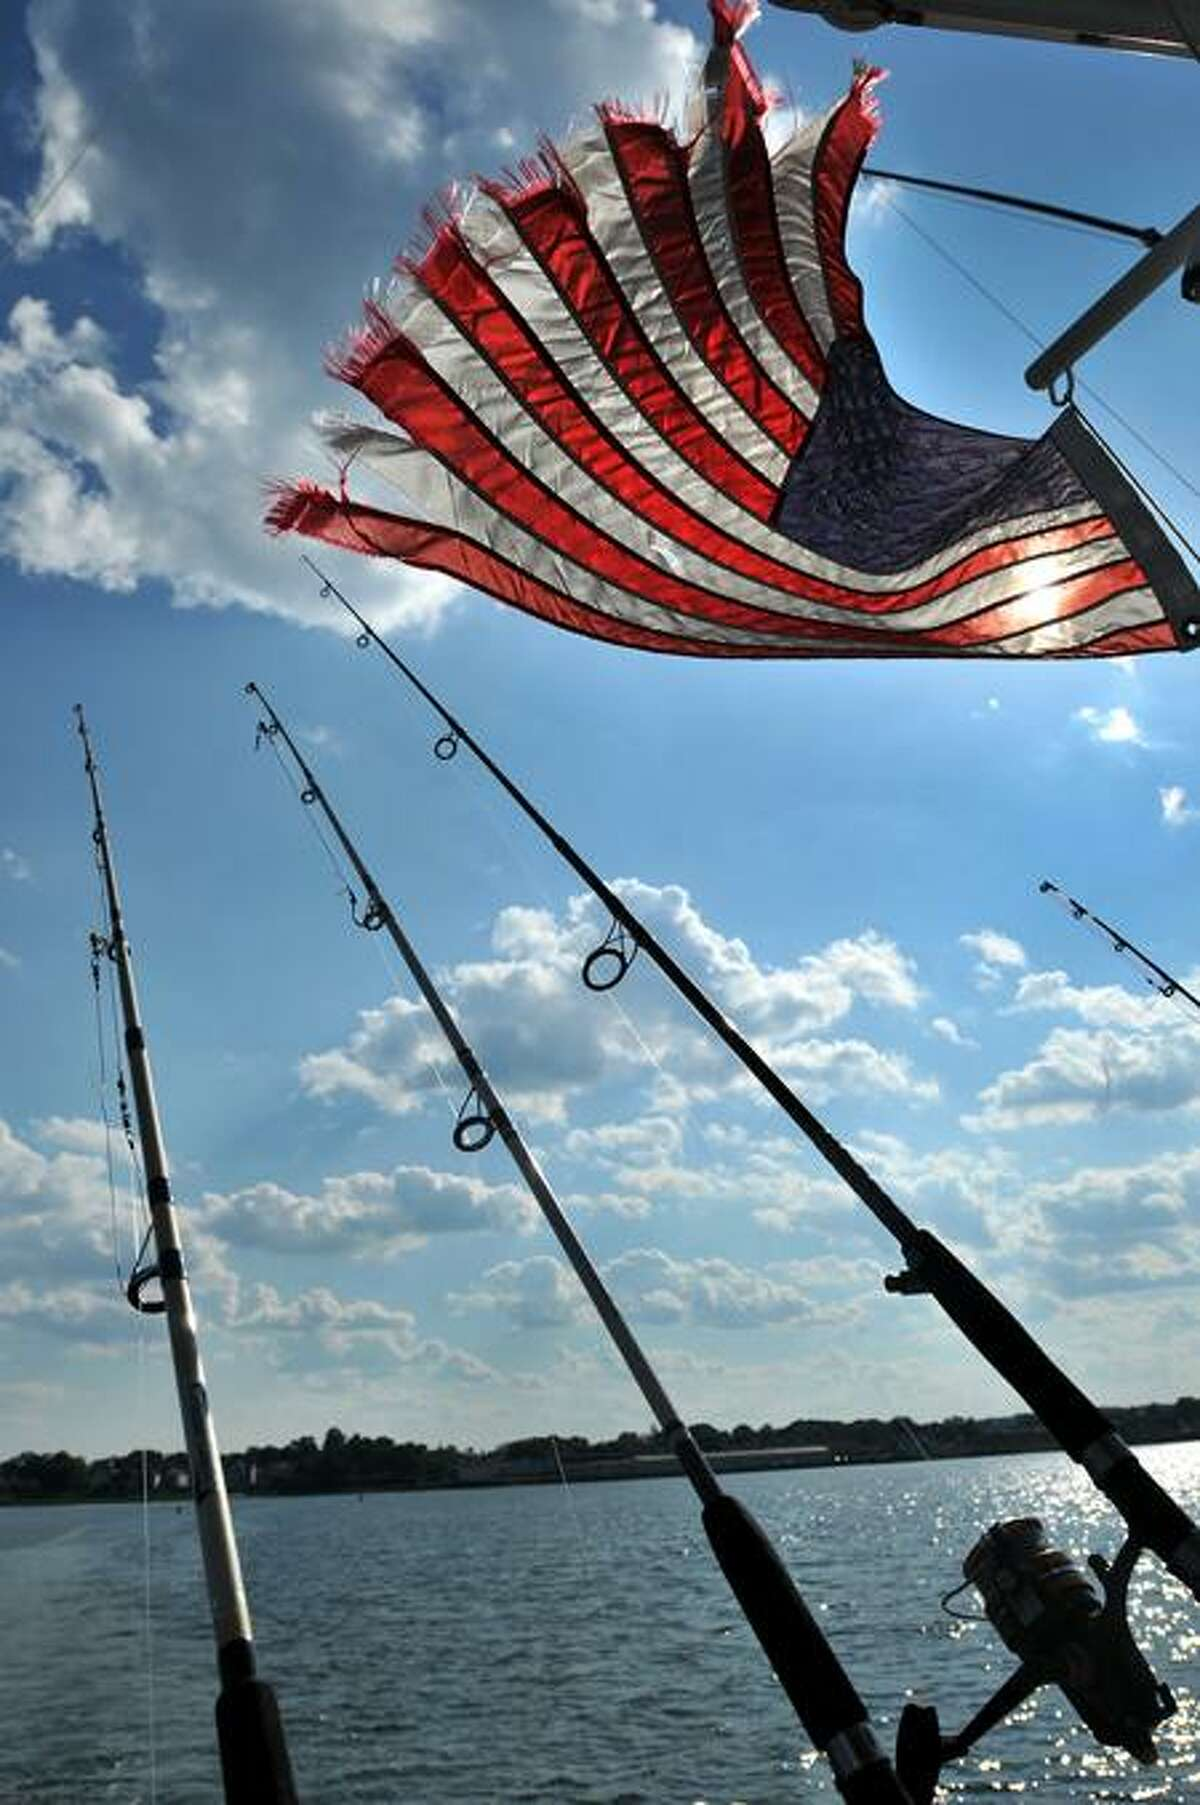 The free from the deck of the Veteran Angler Charters's boat. (Brad Horrigan/Register)